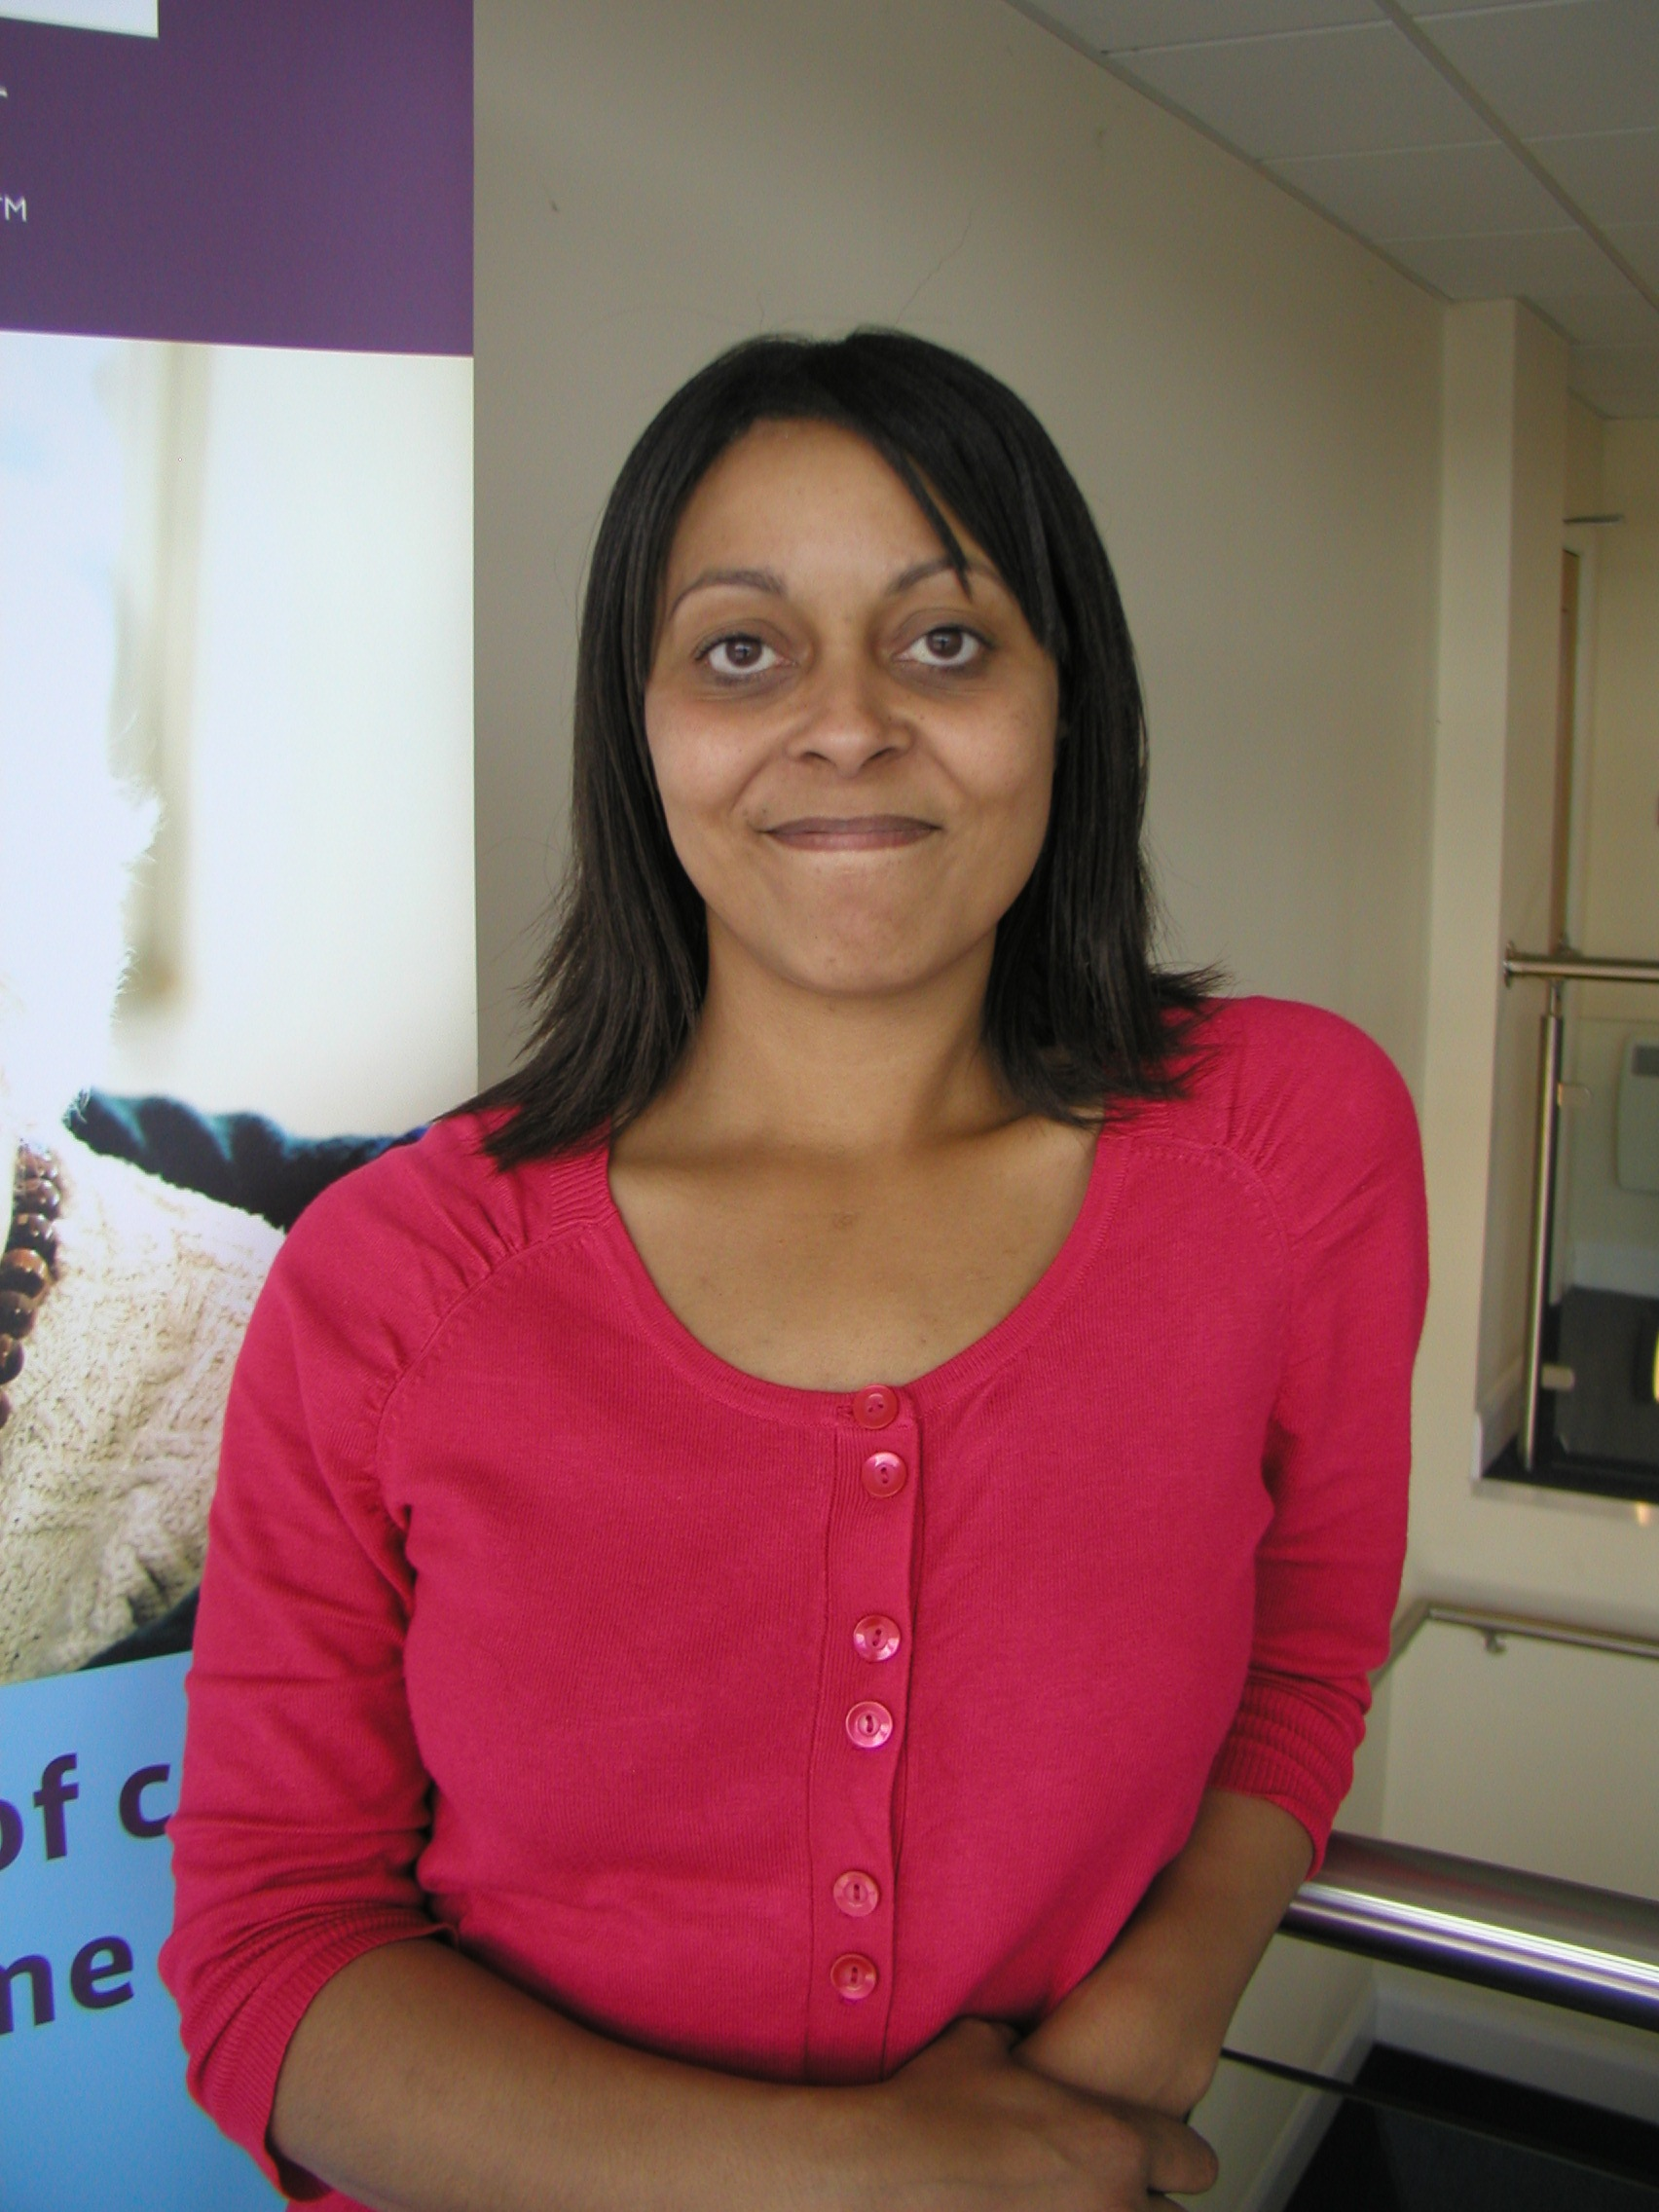 Newly appointed Home Instead Wolverhampton Care Manager Kay Kennedy